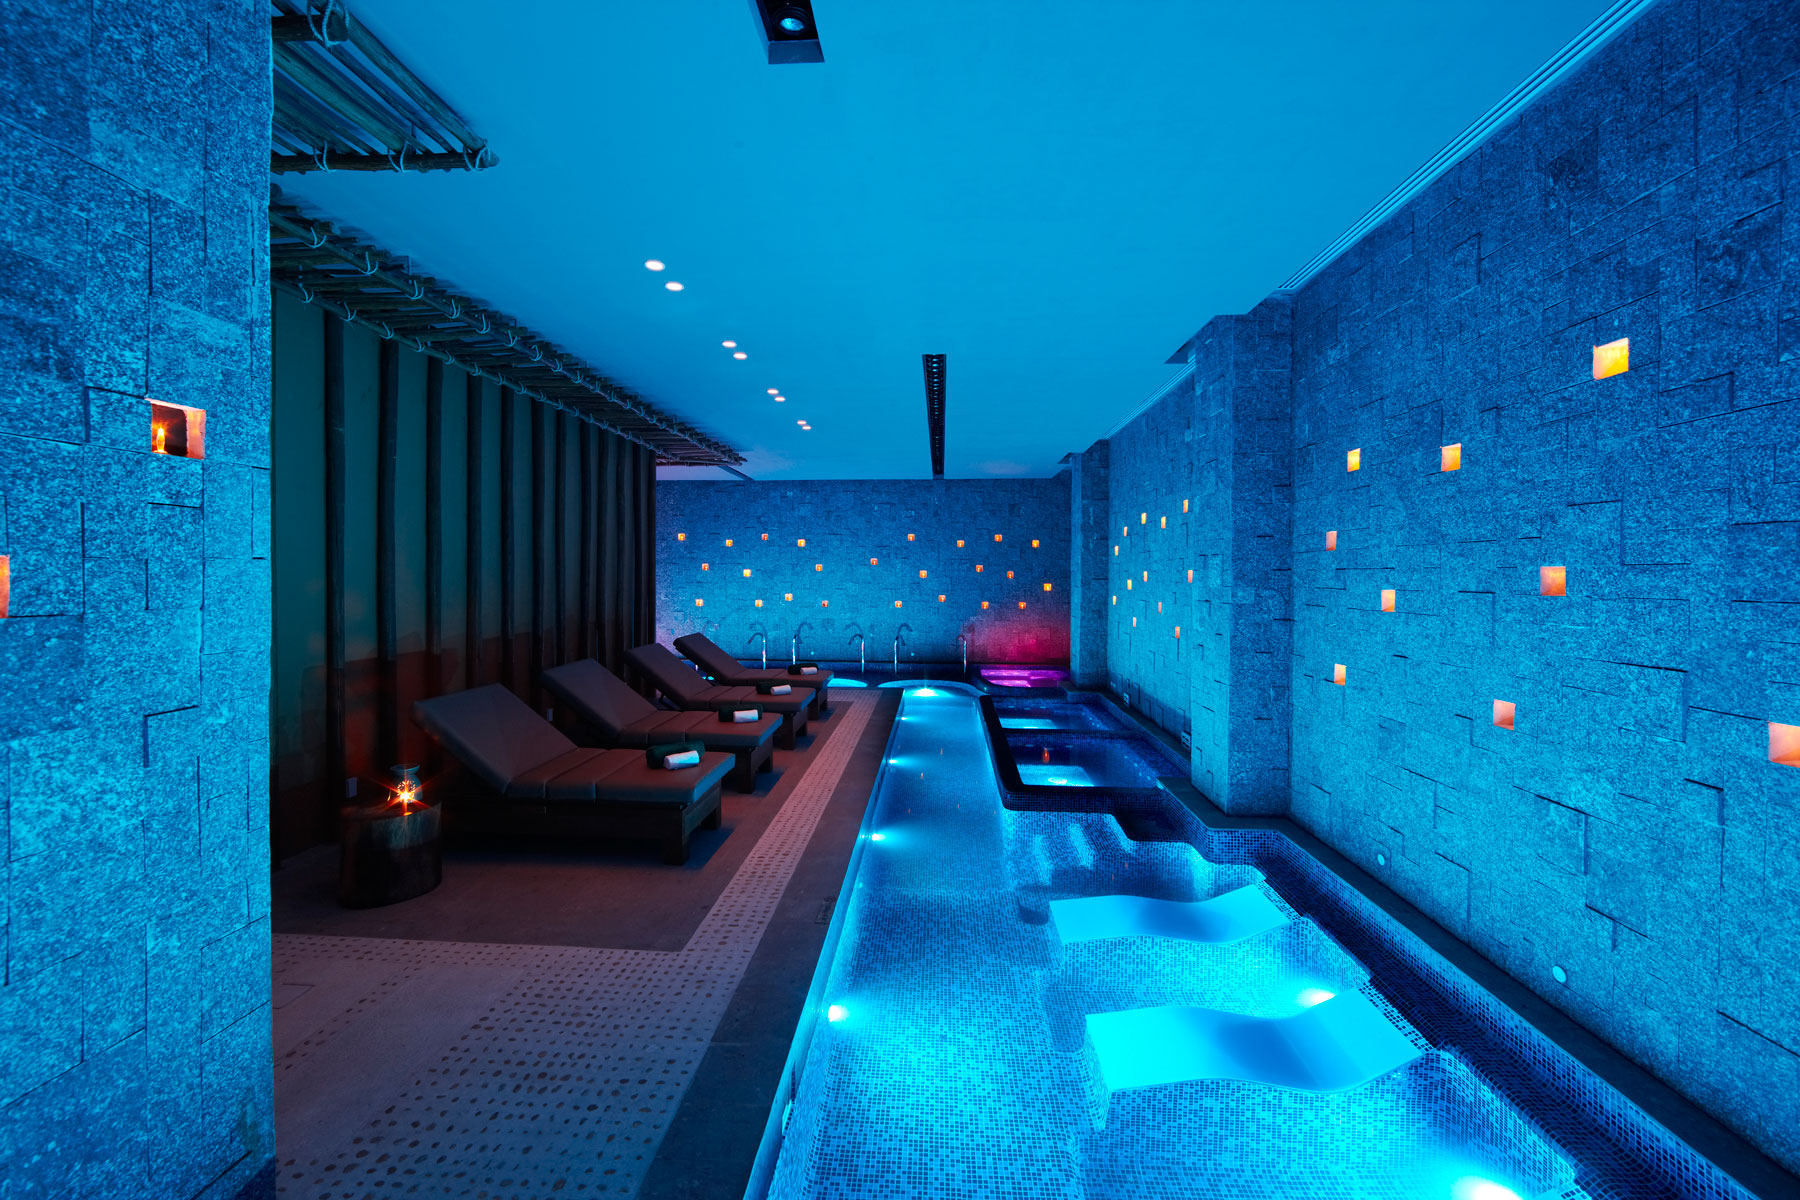 2_28-BTMXMY_SG_0609_Spa_Rainforest_Vitality_Pool_019.jpg